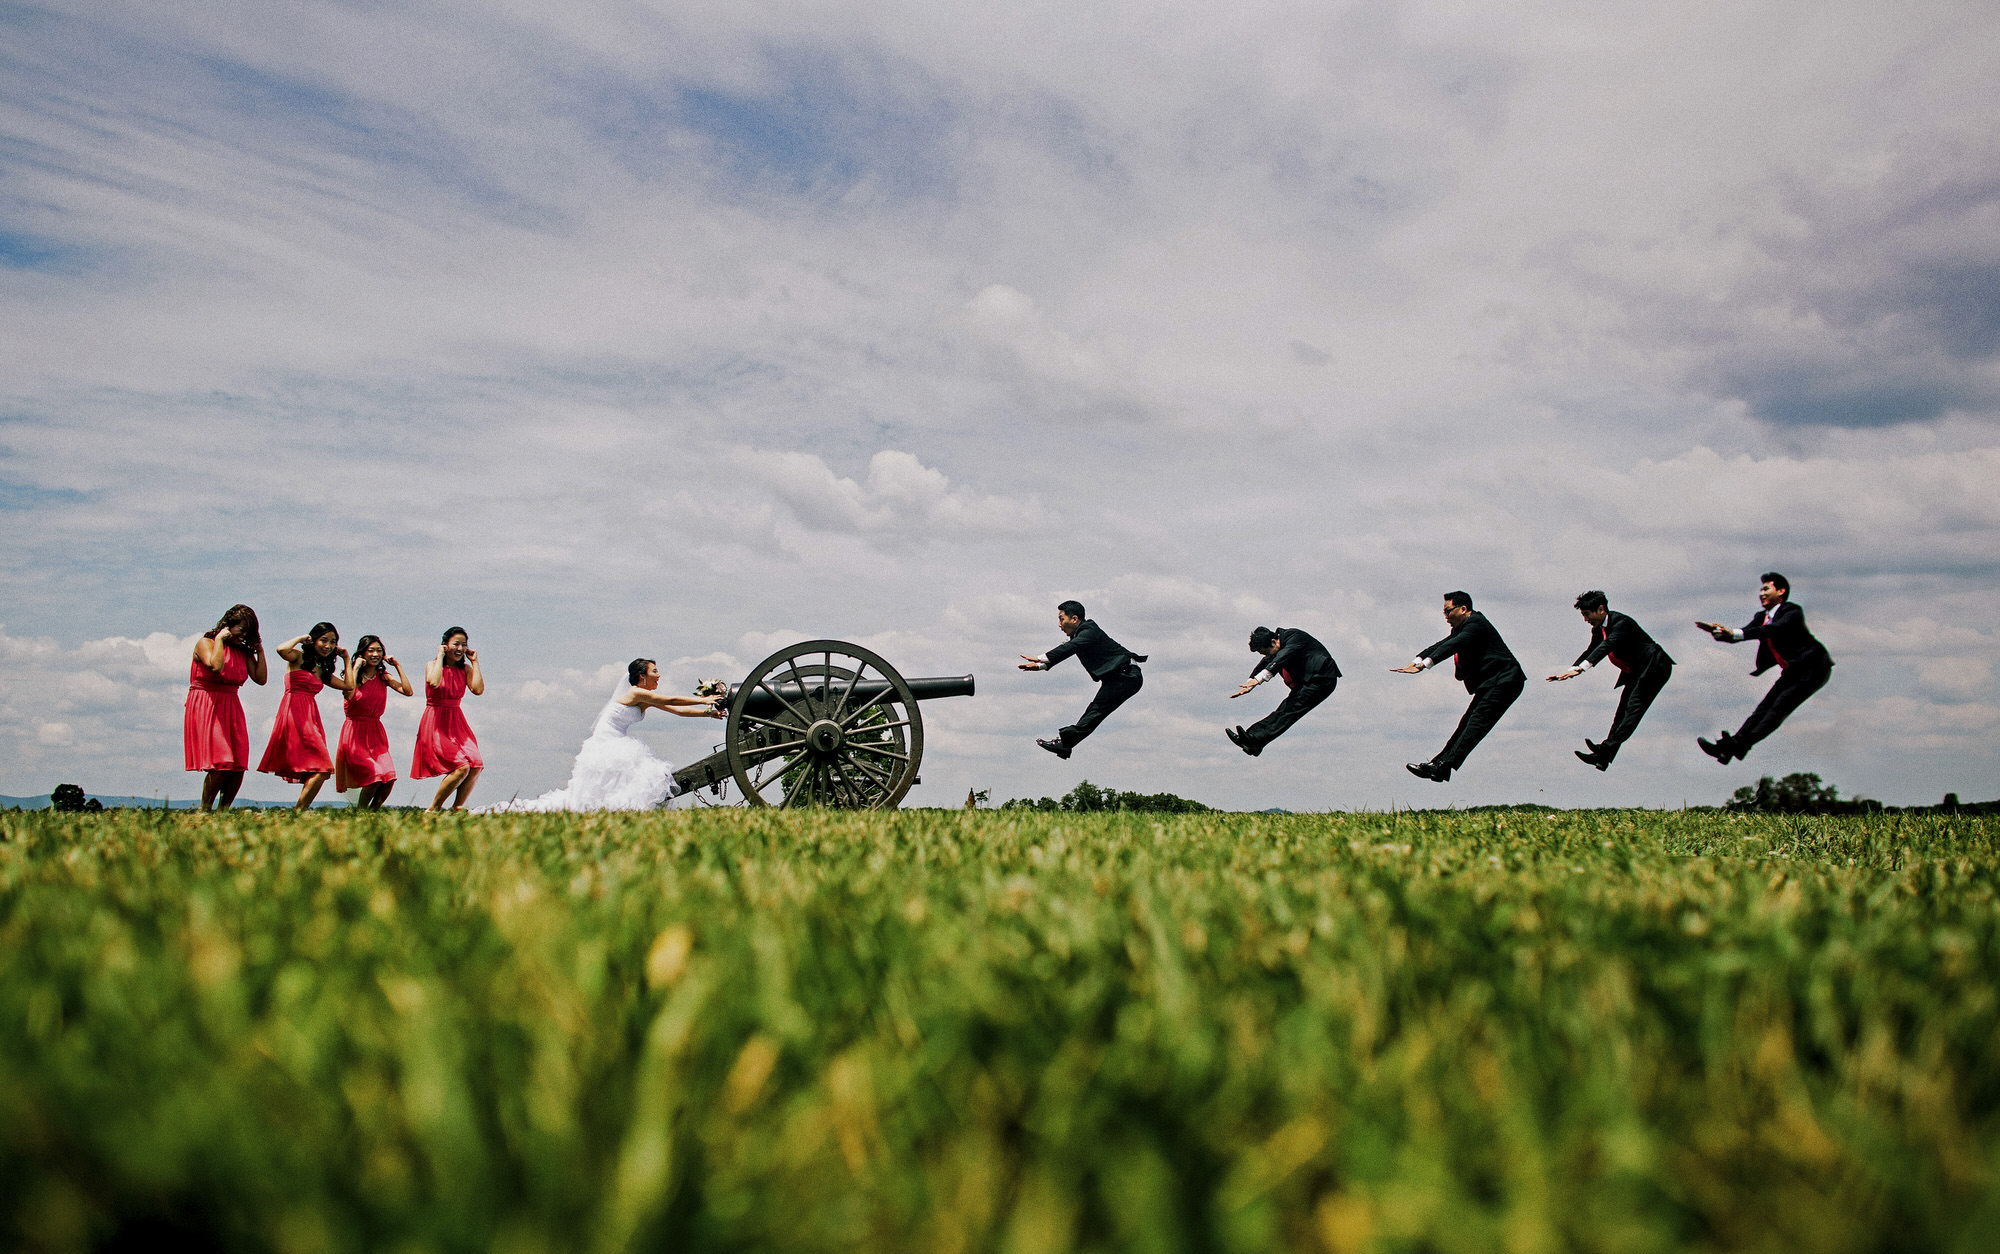 Funny photo of wedding party with cannon - photo by Ken Pak